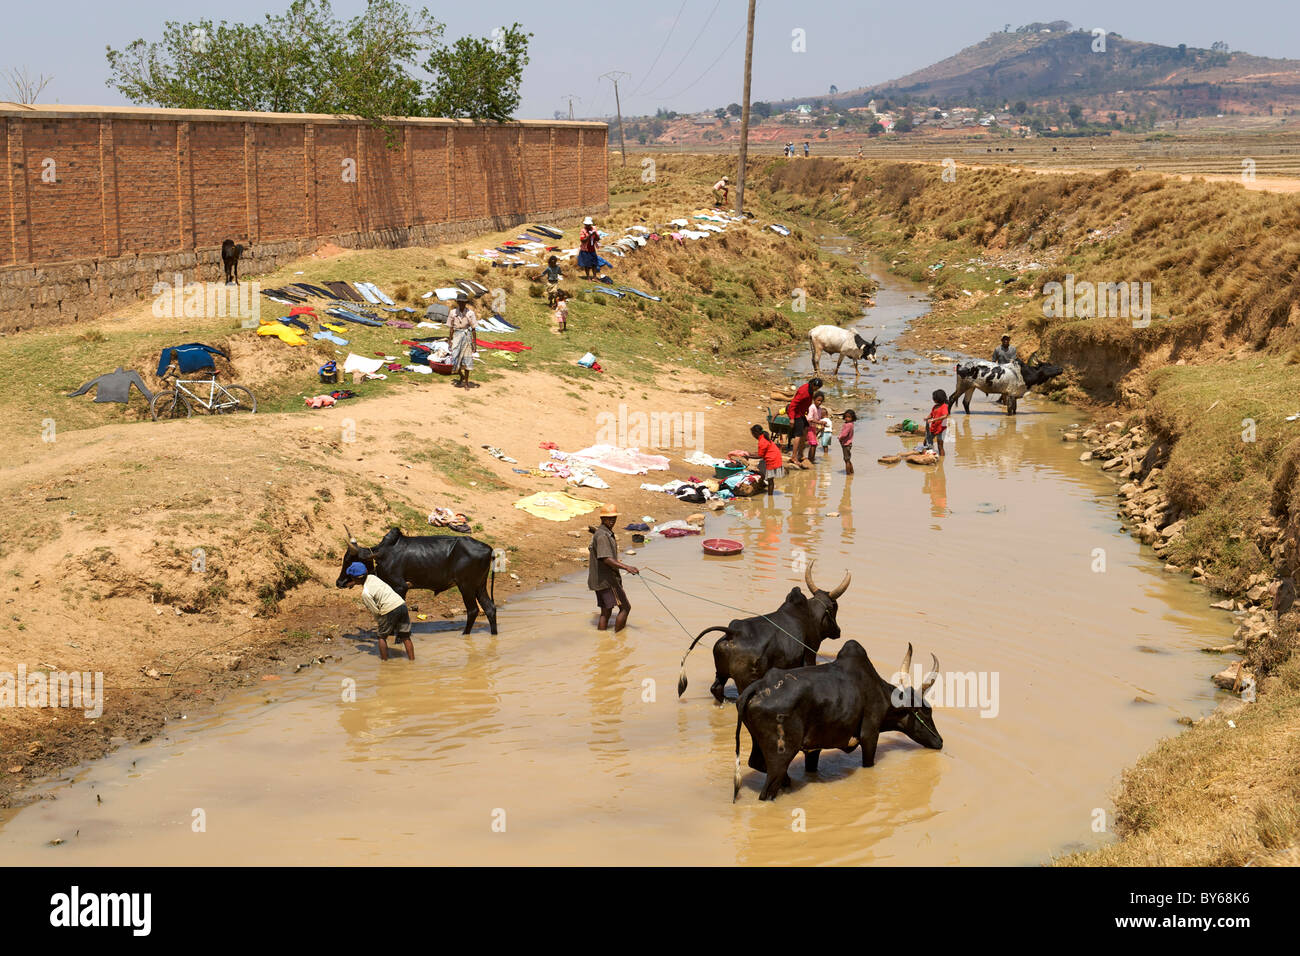 Zebu (oxen) drinking and people doing washing in a river on the outskirts of Antananarivo, the capital of Madagascar. - Stock Image